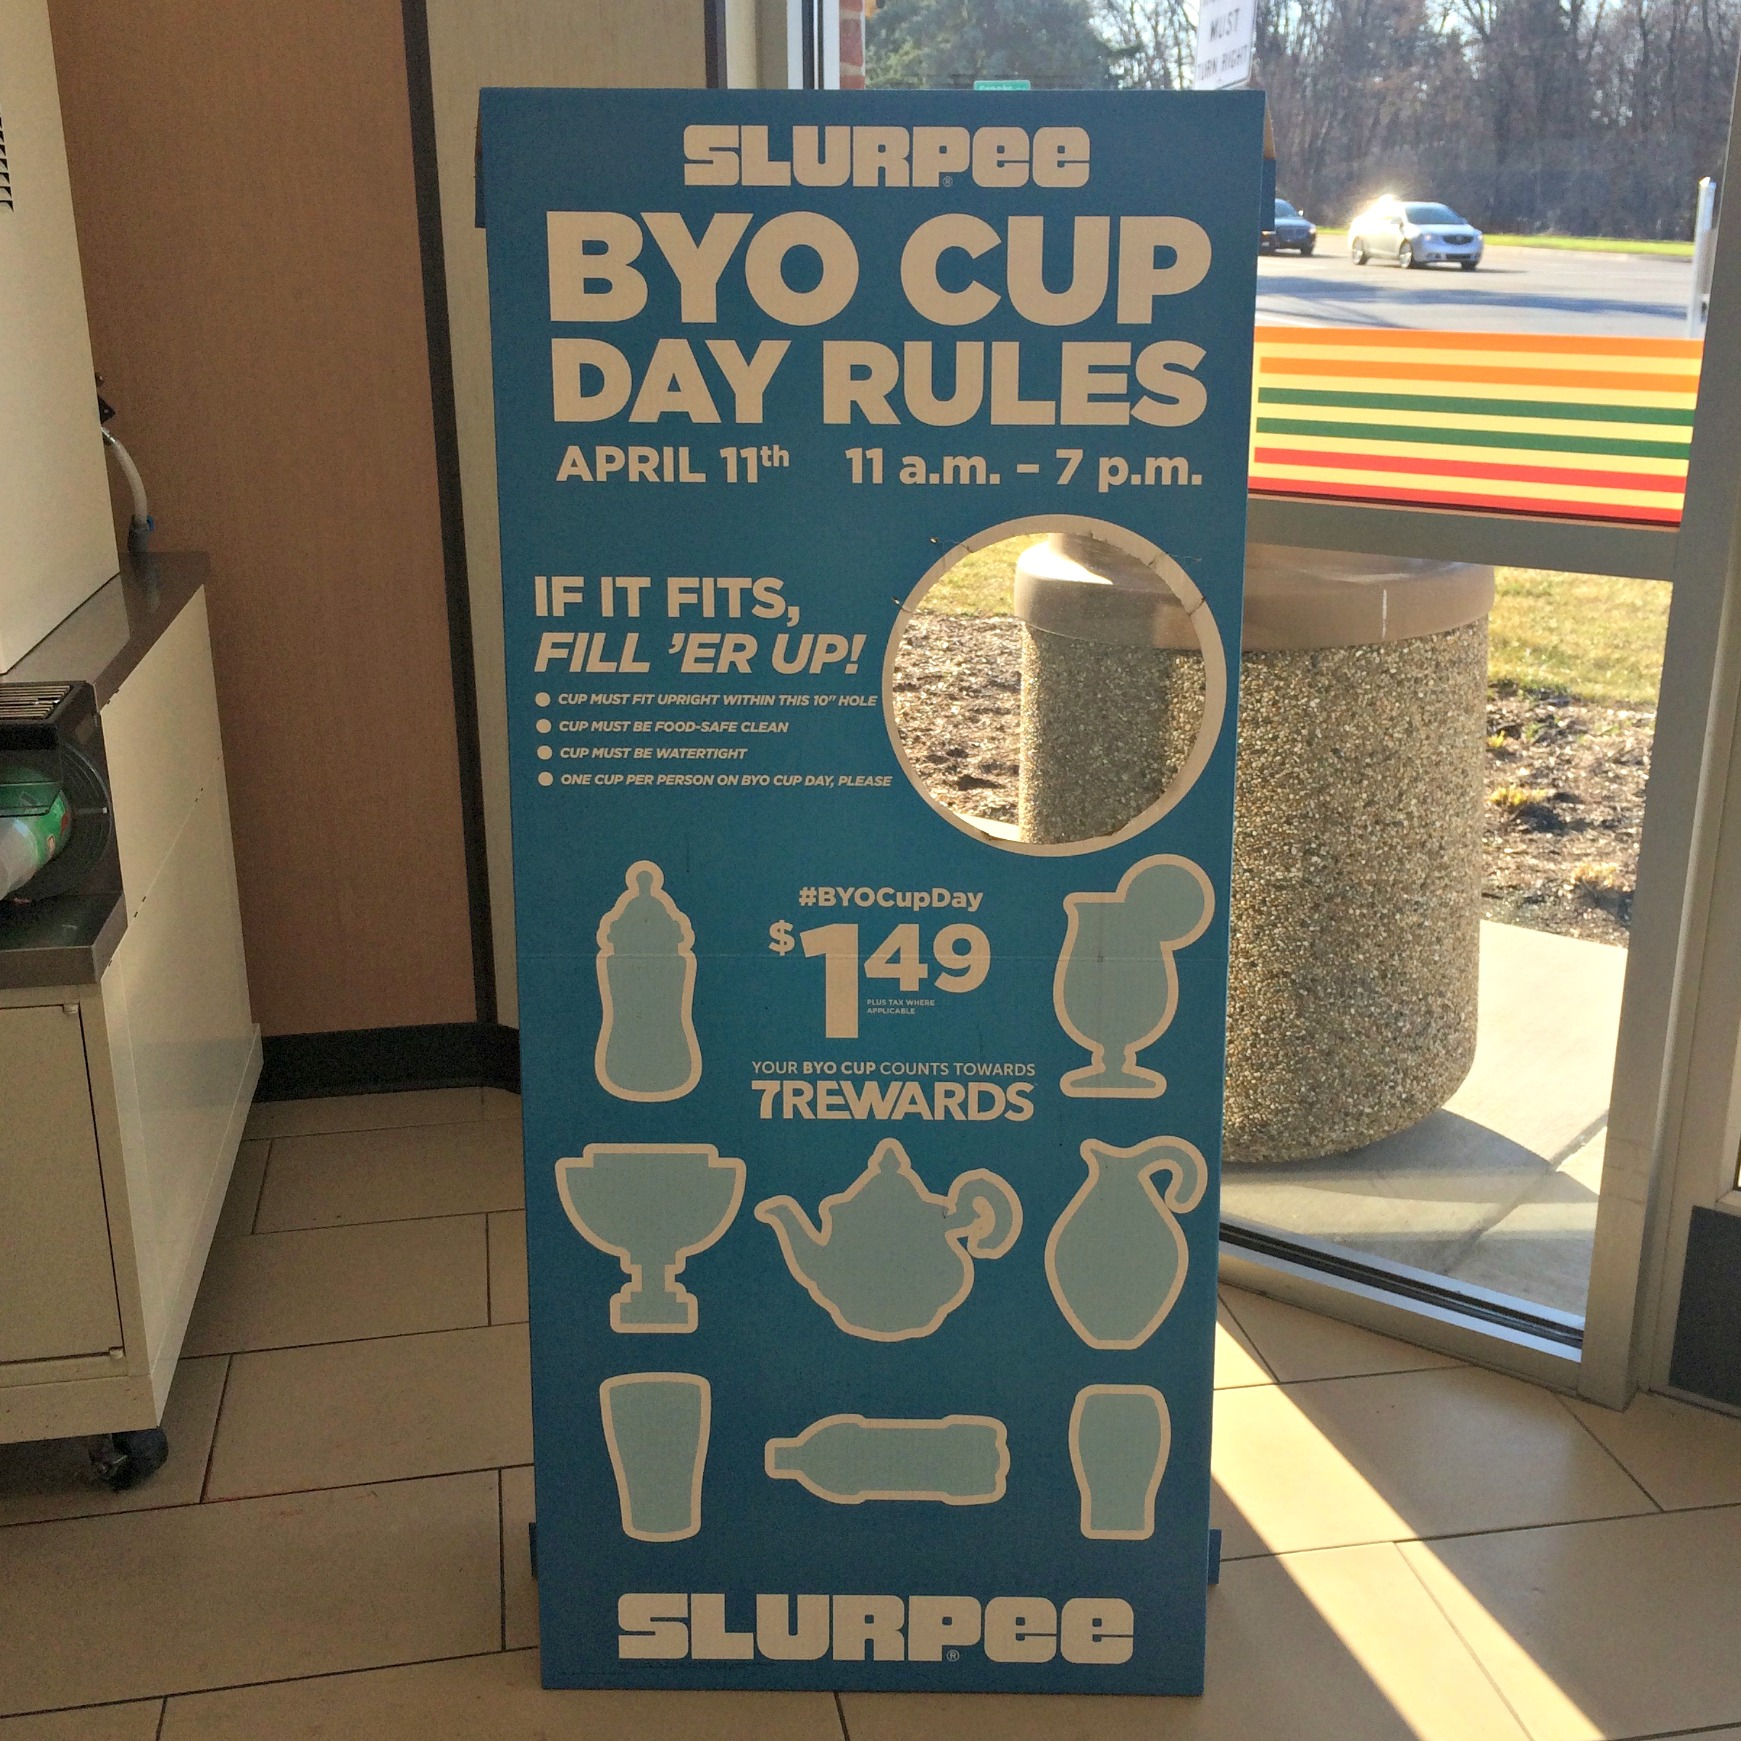 Slurpee BYO Cup Day April 11th 2015